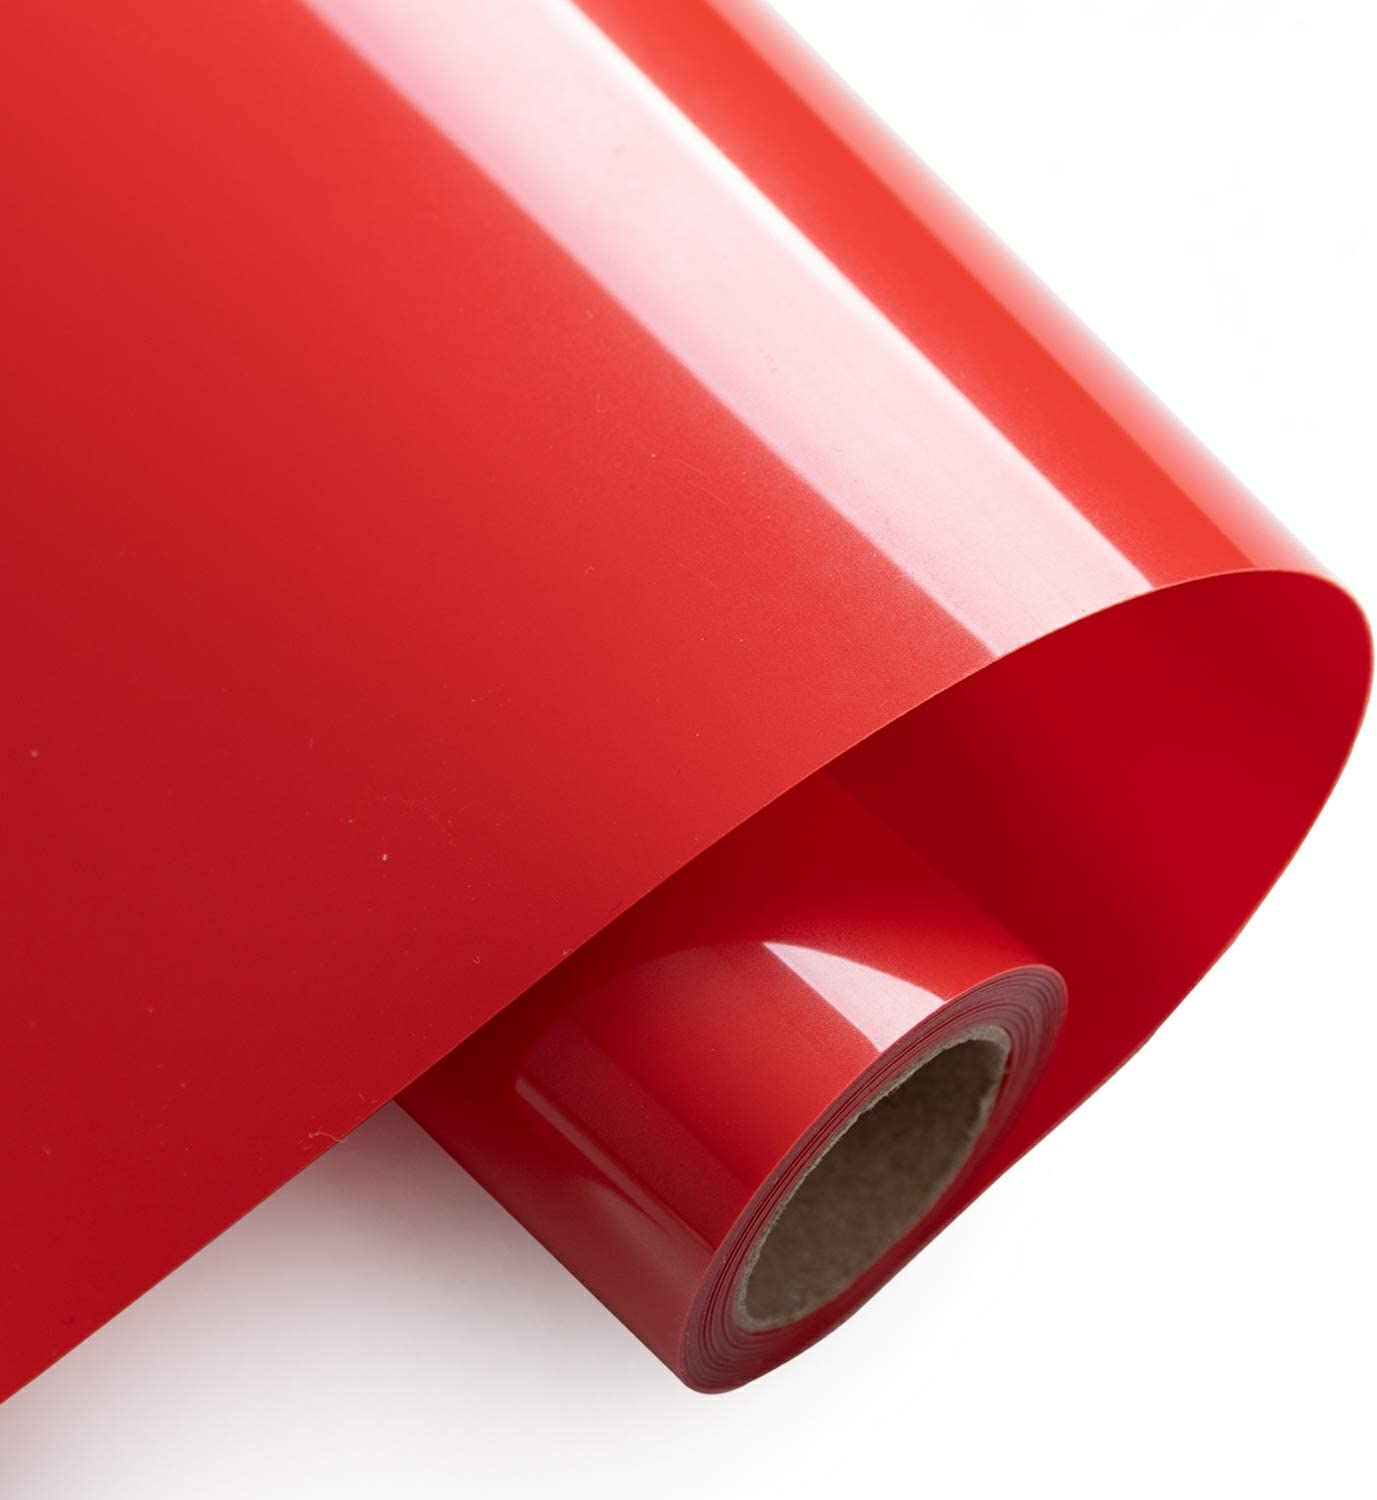 Easy to Cut /& Weed Iron on Vinyl for Clothes Red HTV Heat Transfer Vinyl Roll Red 12 x 12ft Red HTV Vinyl for Shirts